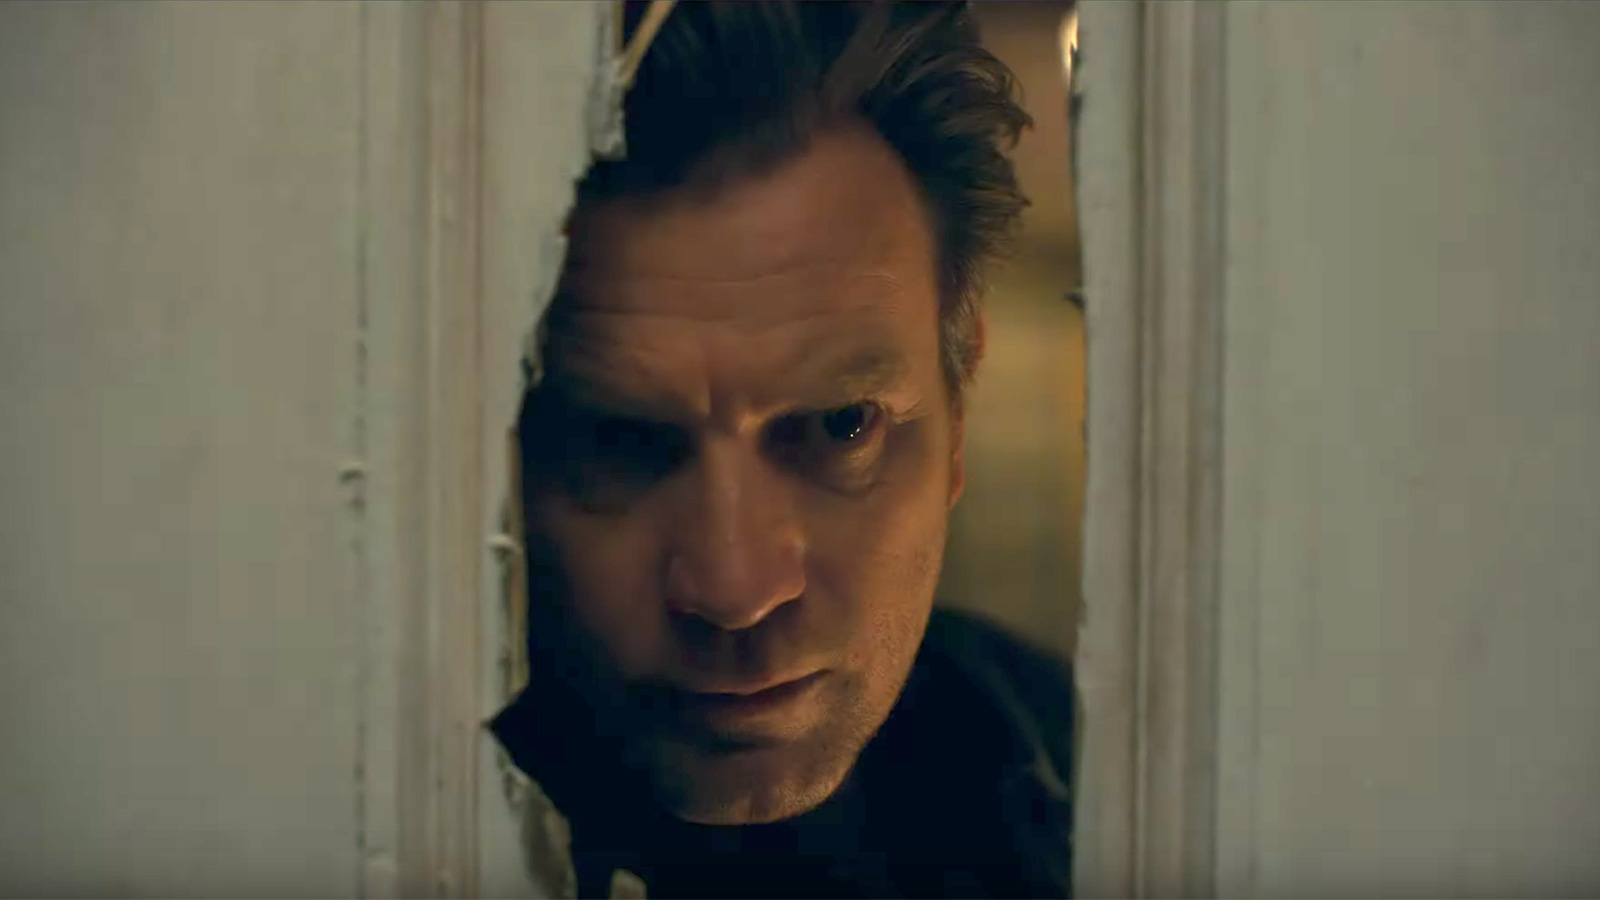 'Doctor Sleep': See Haunting New Trailer for Stephen King's 'The Shining' Sequel